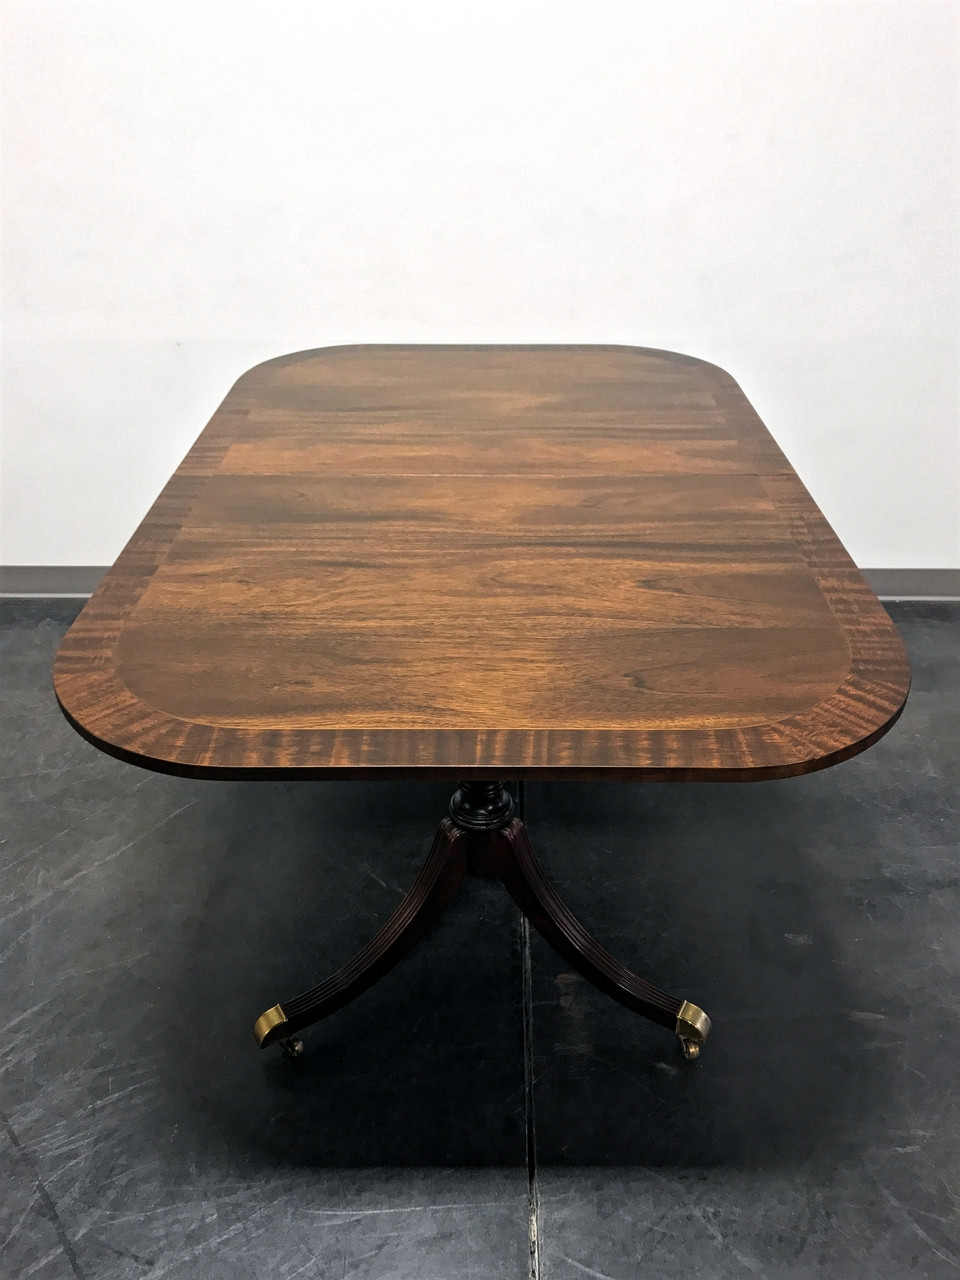 SOLD OUT Refurbished Vintage Banded Mahogany Double Pedestal - Dining table with 3 leaves